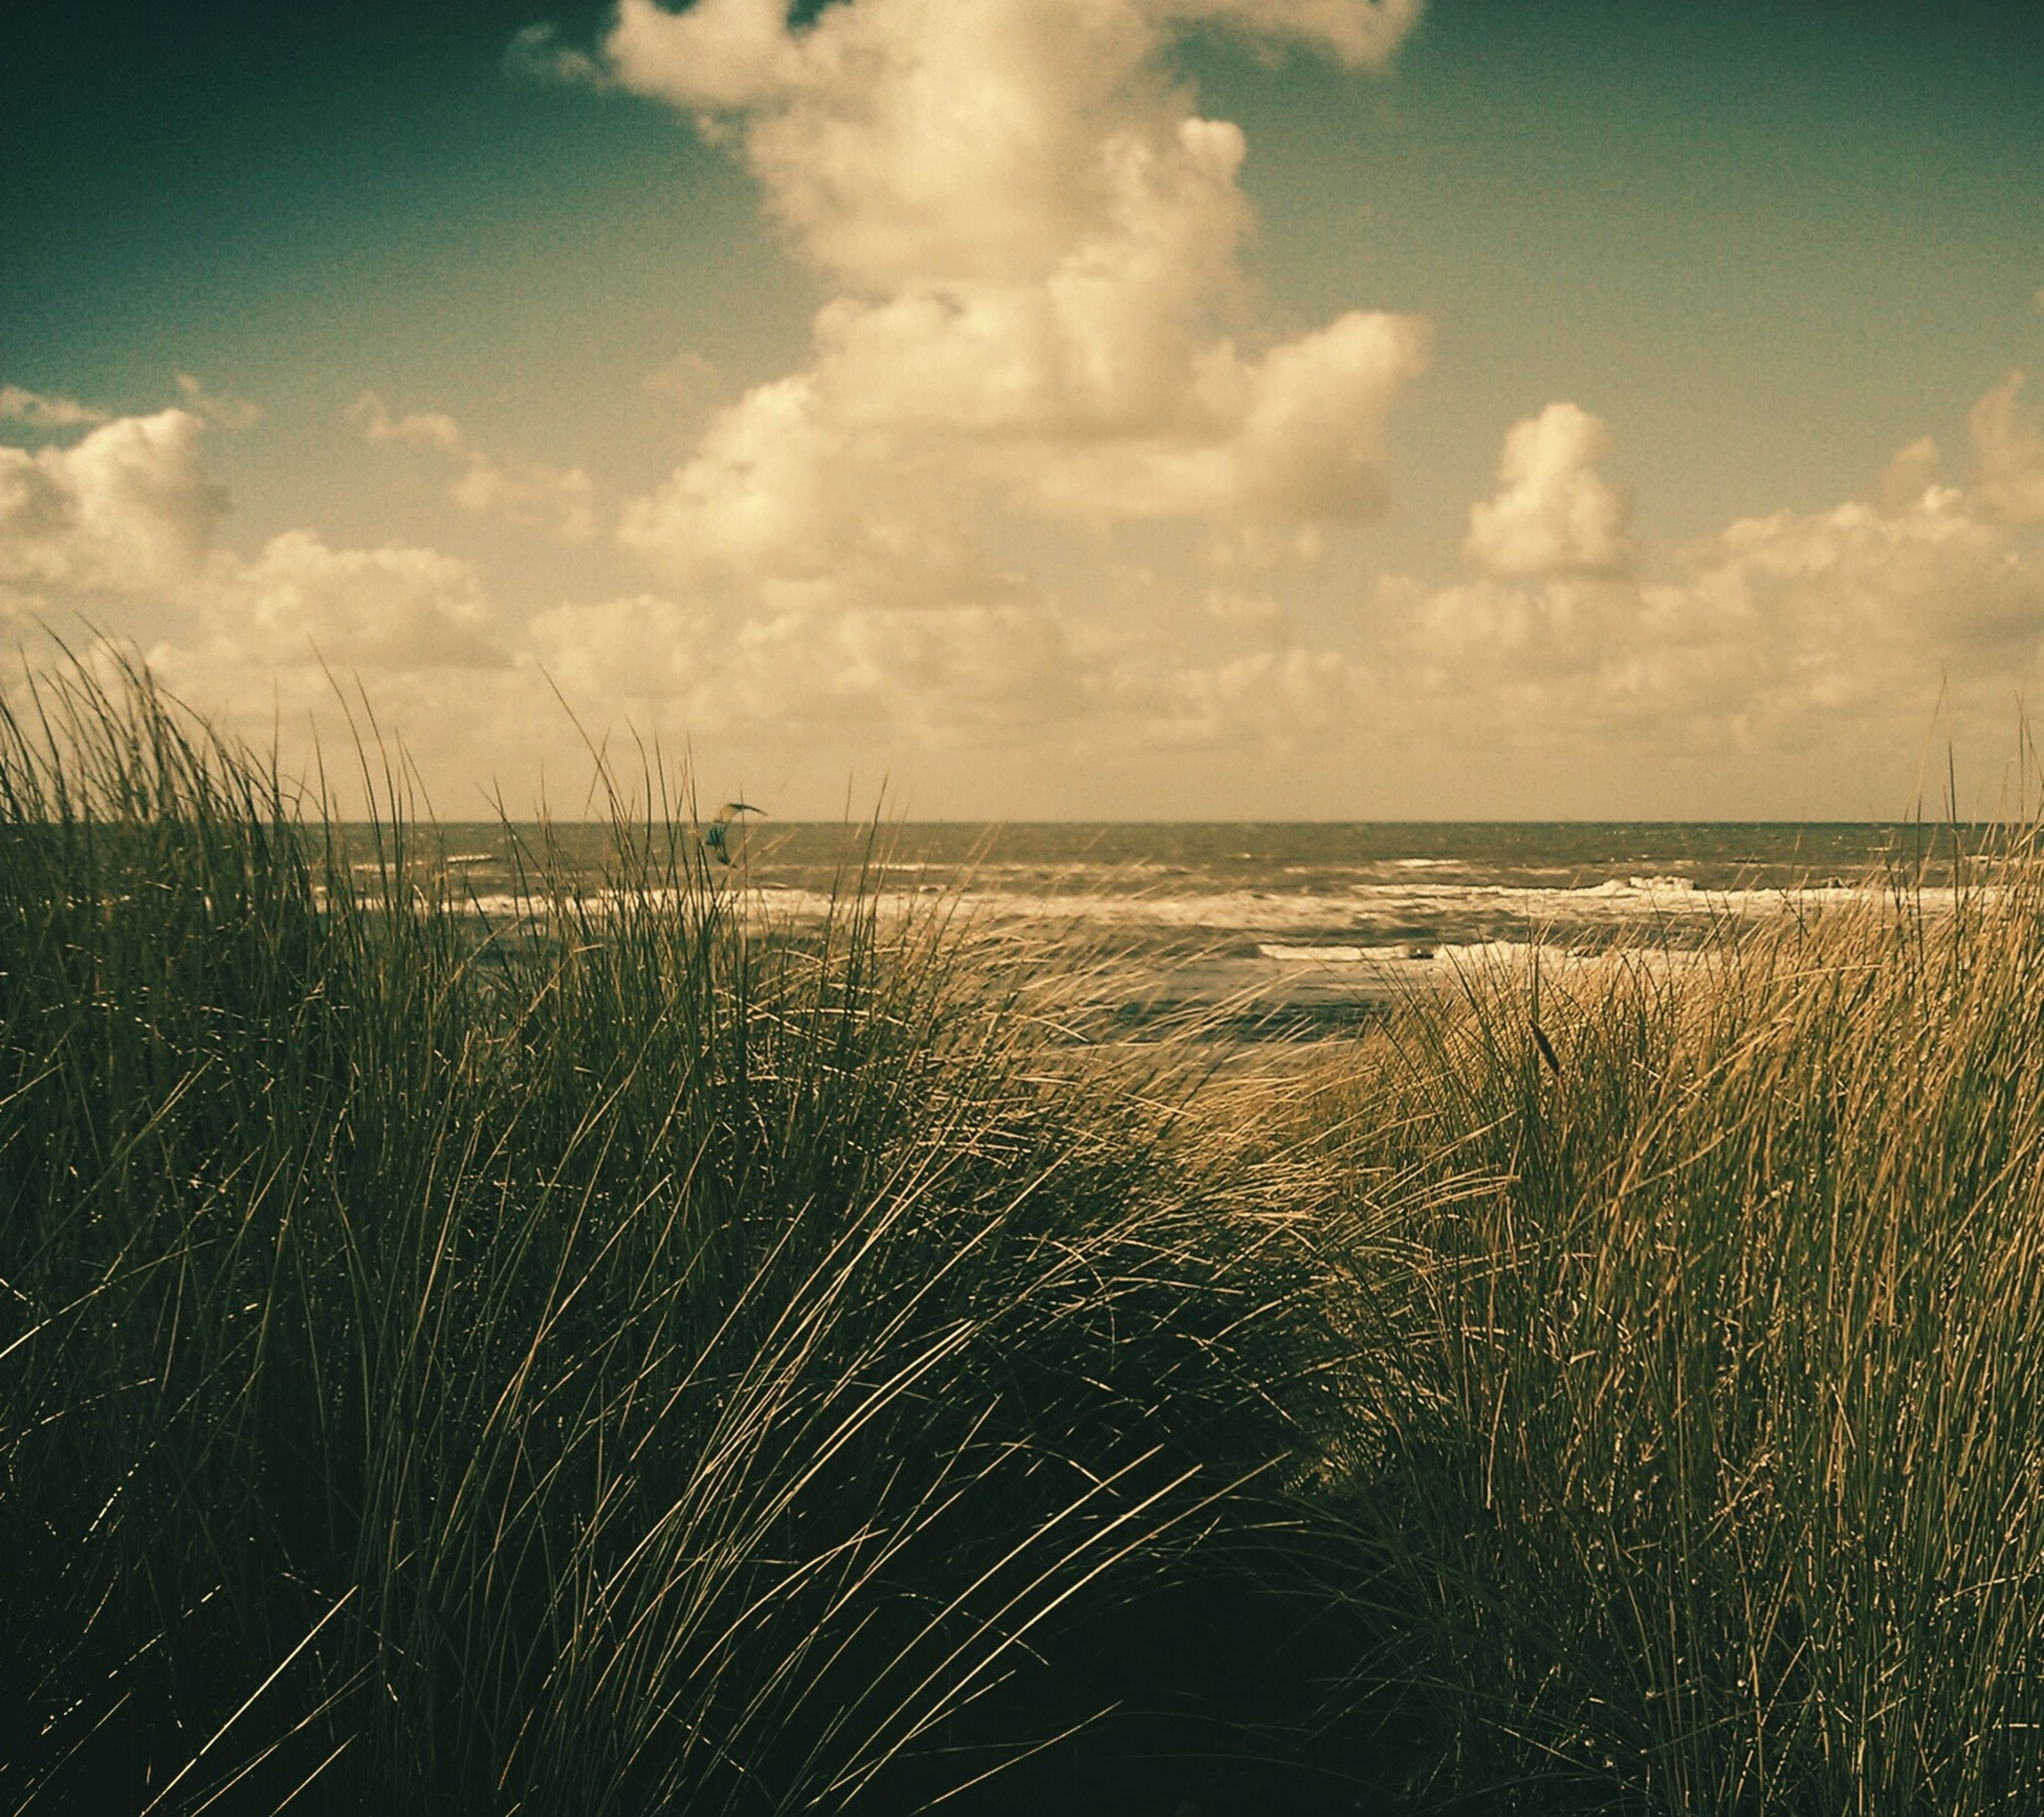 sea, water, sky, horizon over water, tranquil scene, tranquility, scenics, beauty in nature, nature, cloud - sky, beach, cloud, idyllic, outdoors, cloudy, plant, shore, no people, growth, remote